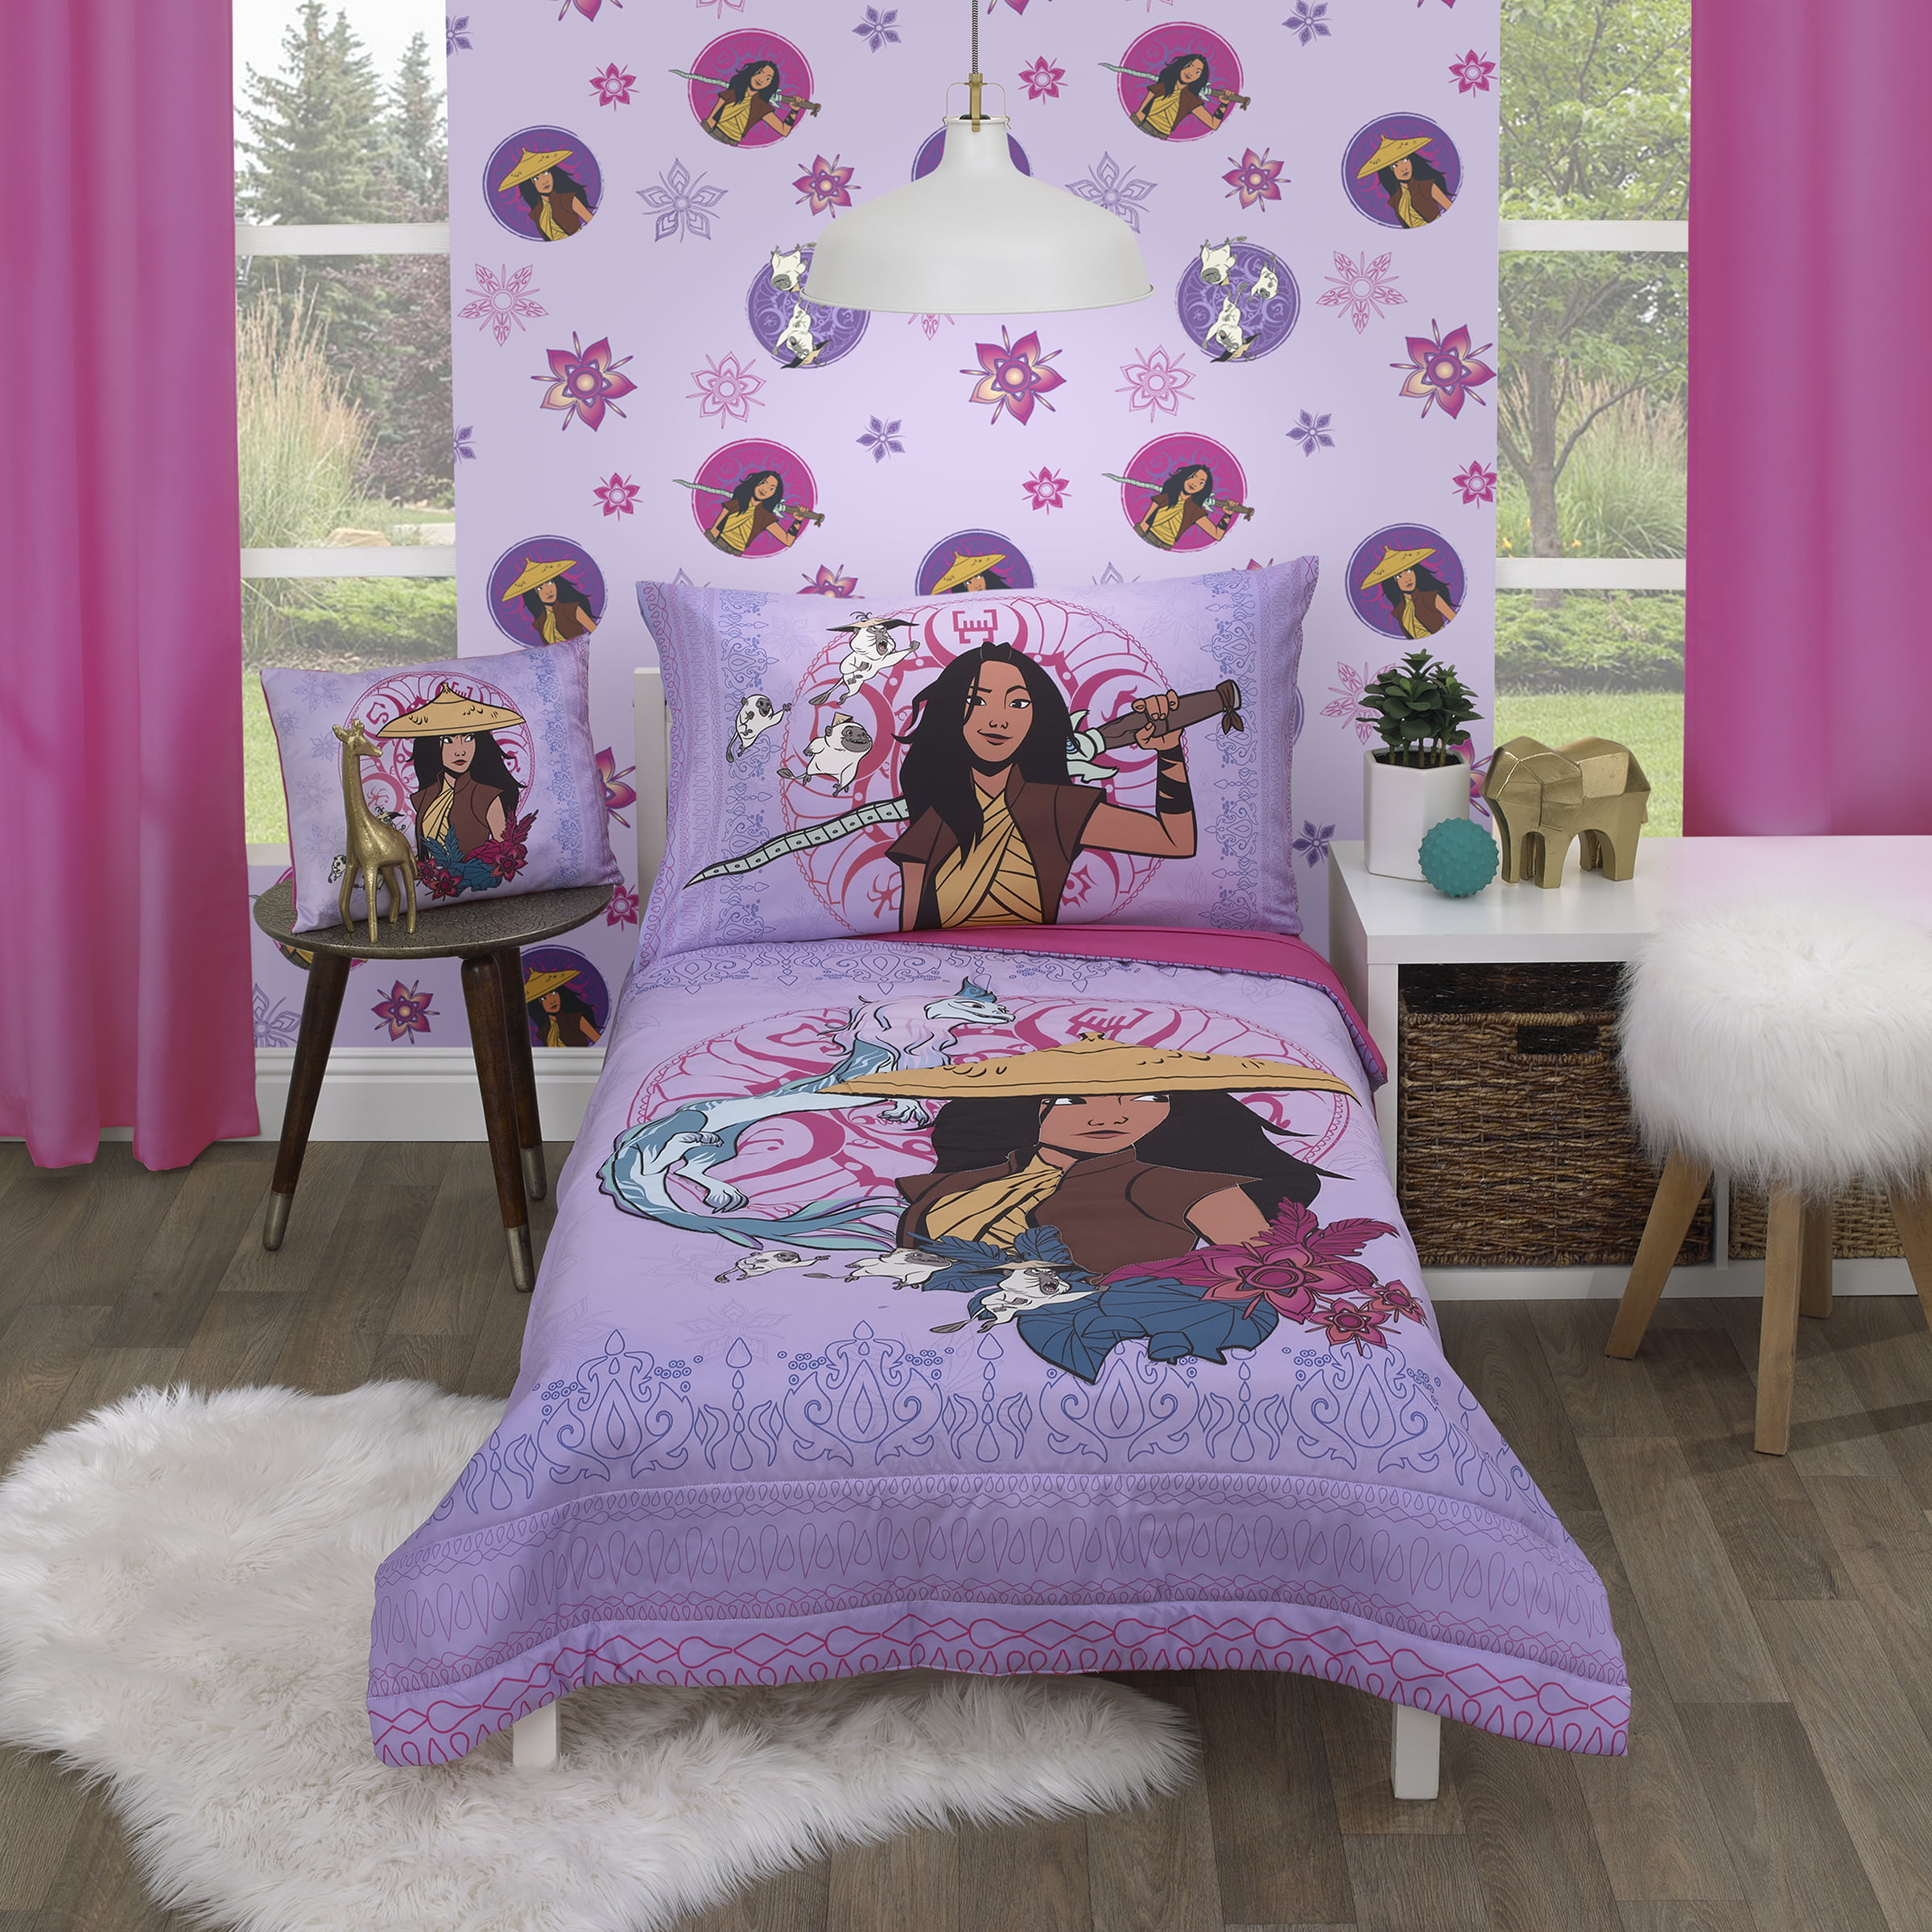 Official Disney Product Fade Resistant Microfiber Sheets 4 Piece Set Super Soft and Cozy Kid/'s Bedding Disney Raya /& The Last Dragon Eternals Queen Sheet Set